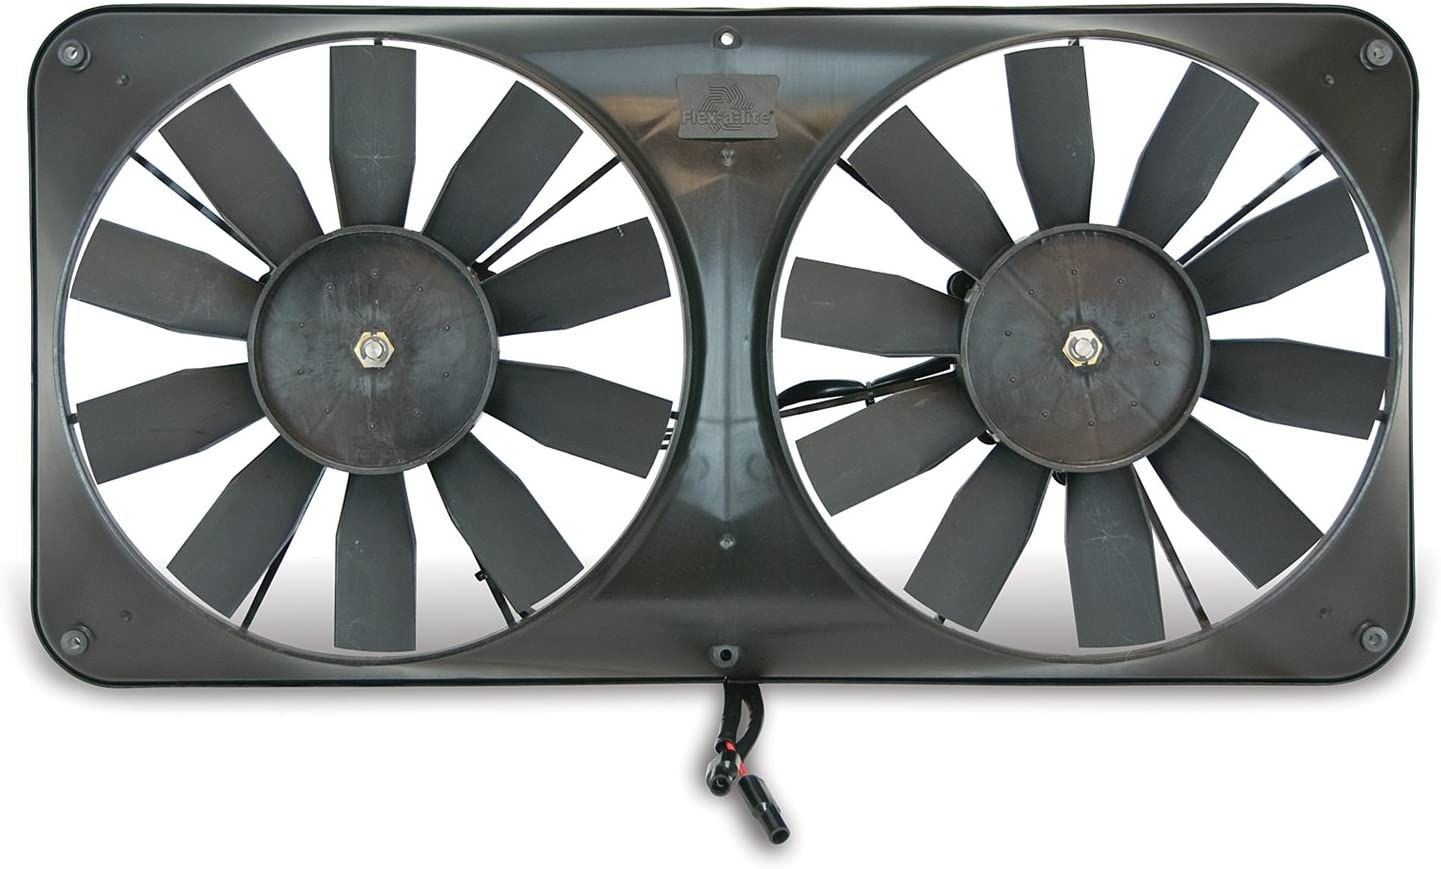 "Flex-a-lite 330 Compact Black 11"" Dual Electric Engine Cooling Reversible Fan Kit"